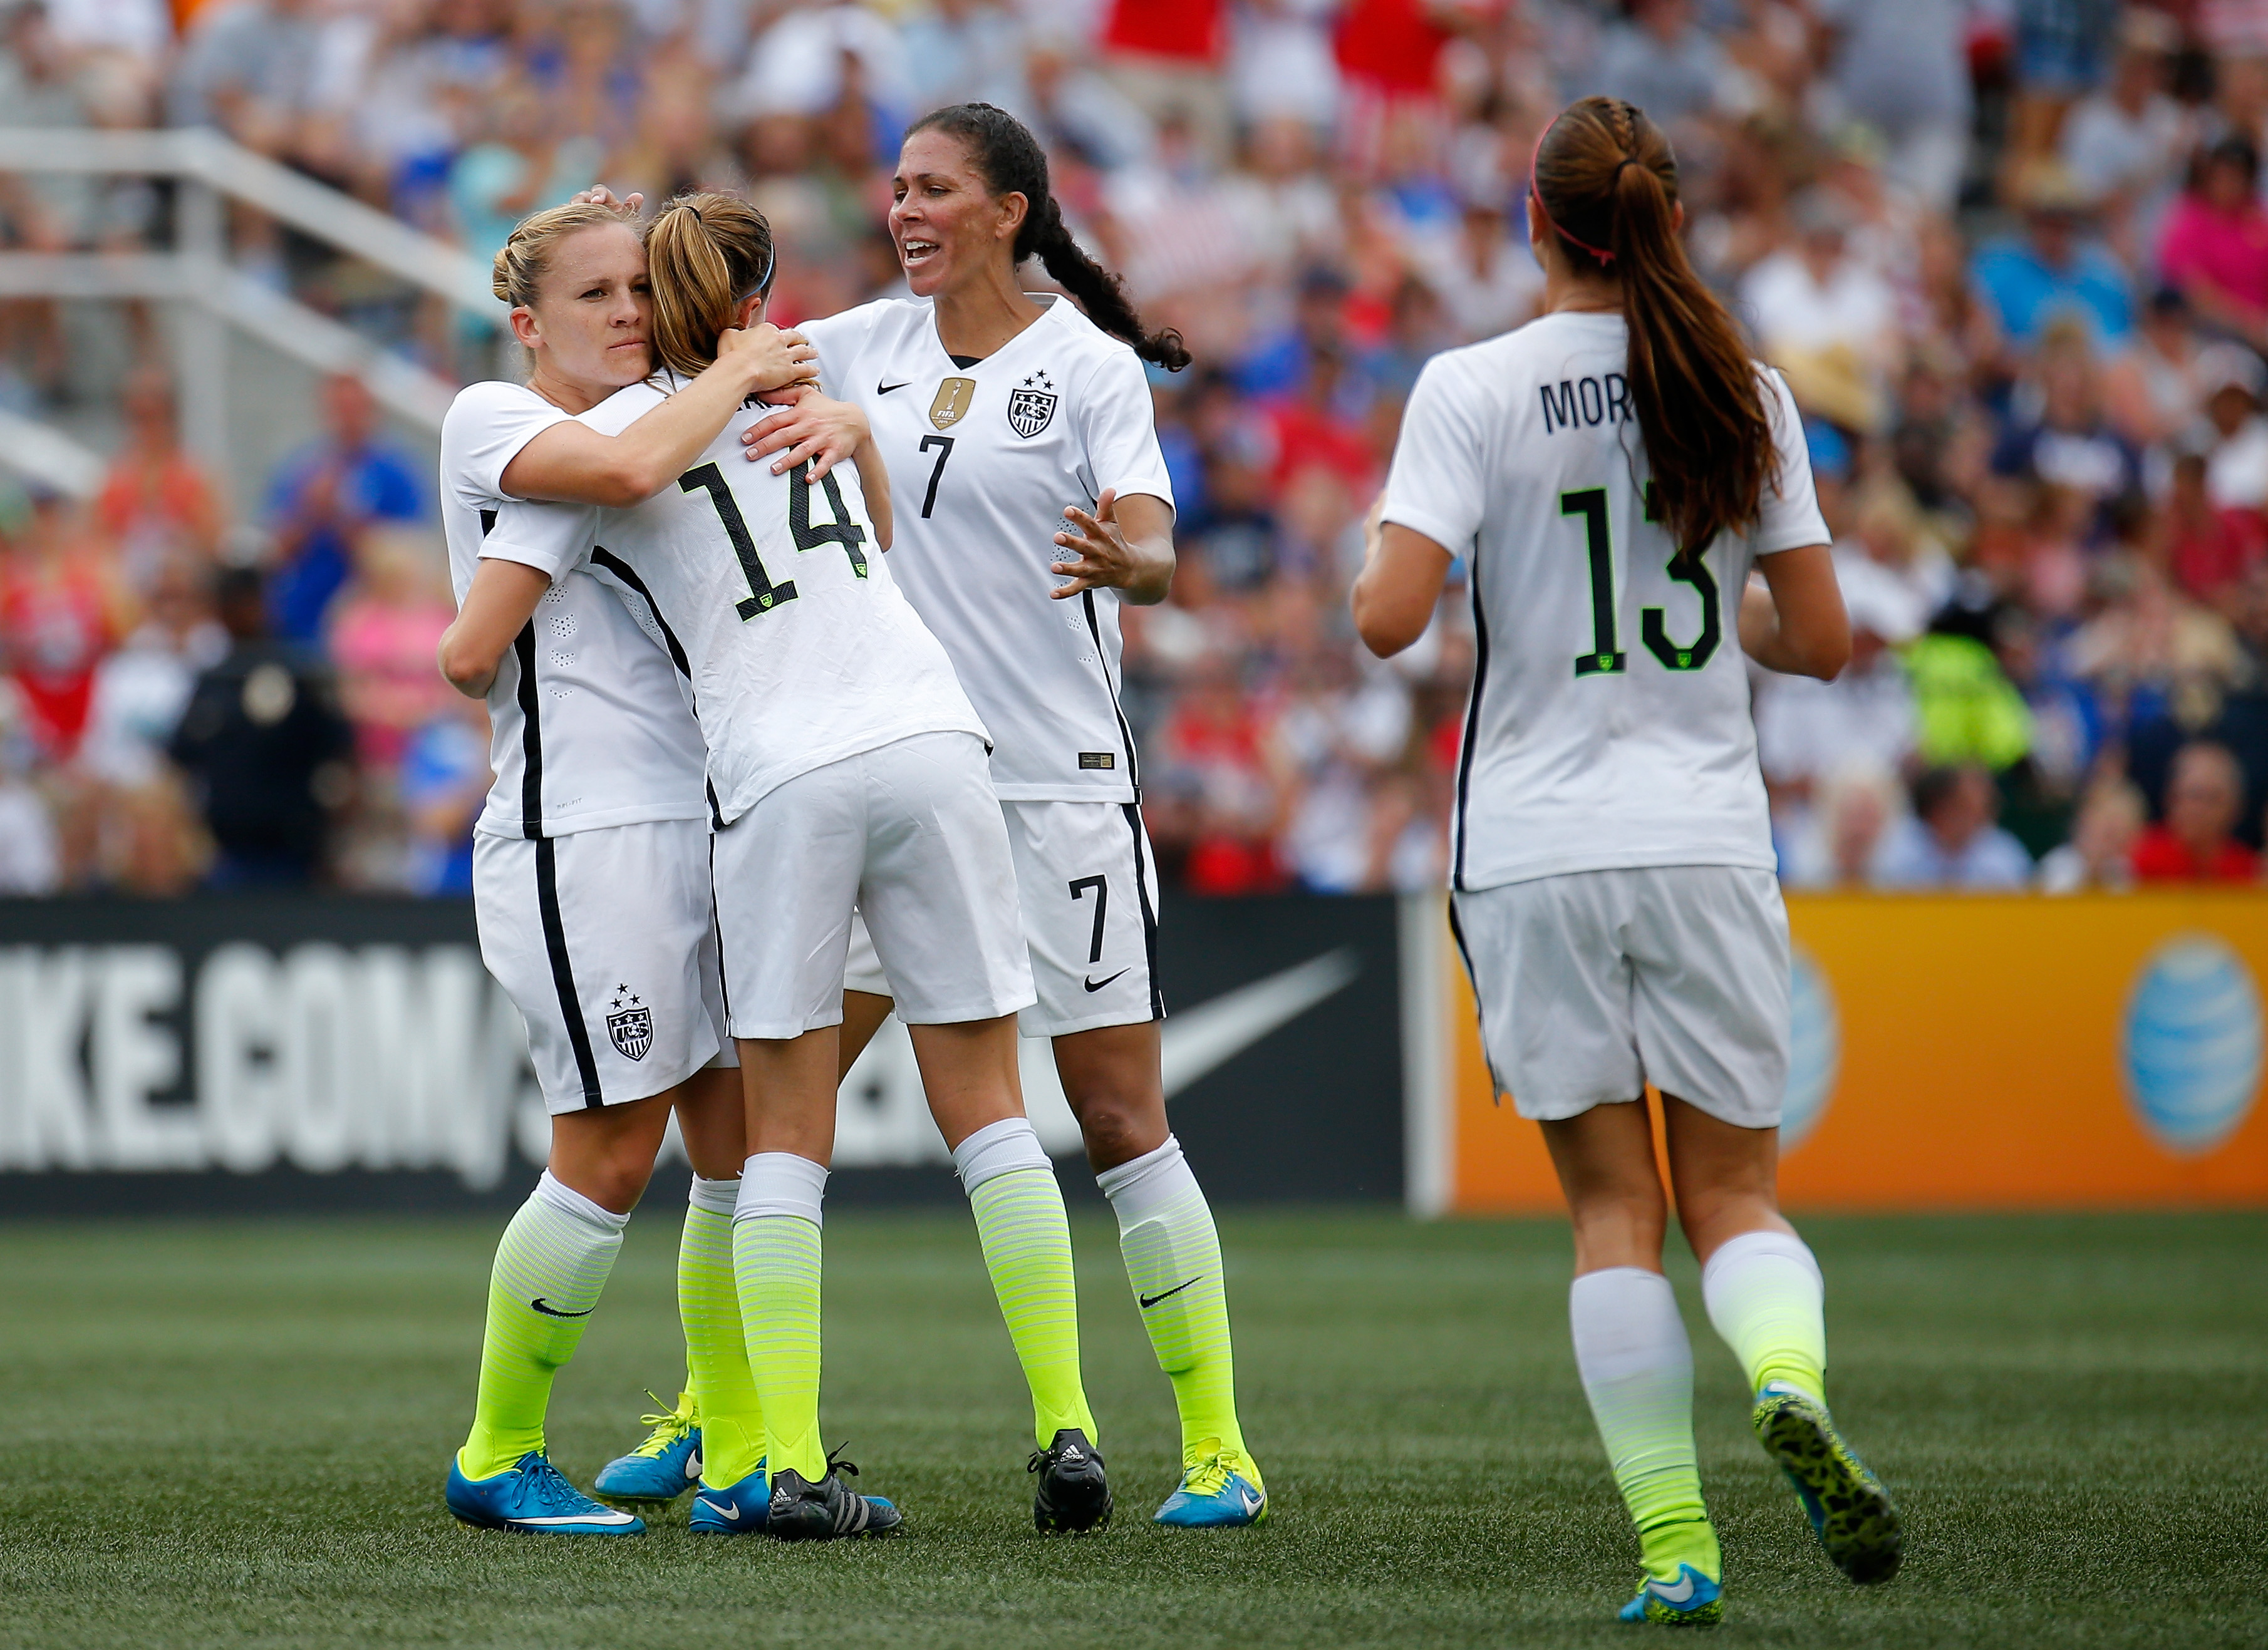 America's world champion women's soccer team is treated worse than our mediocre men's team